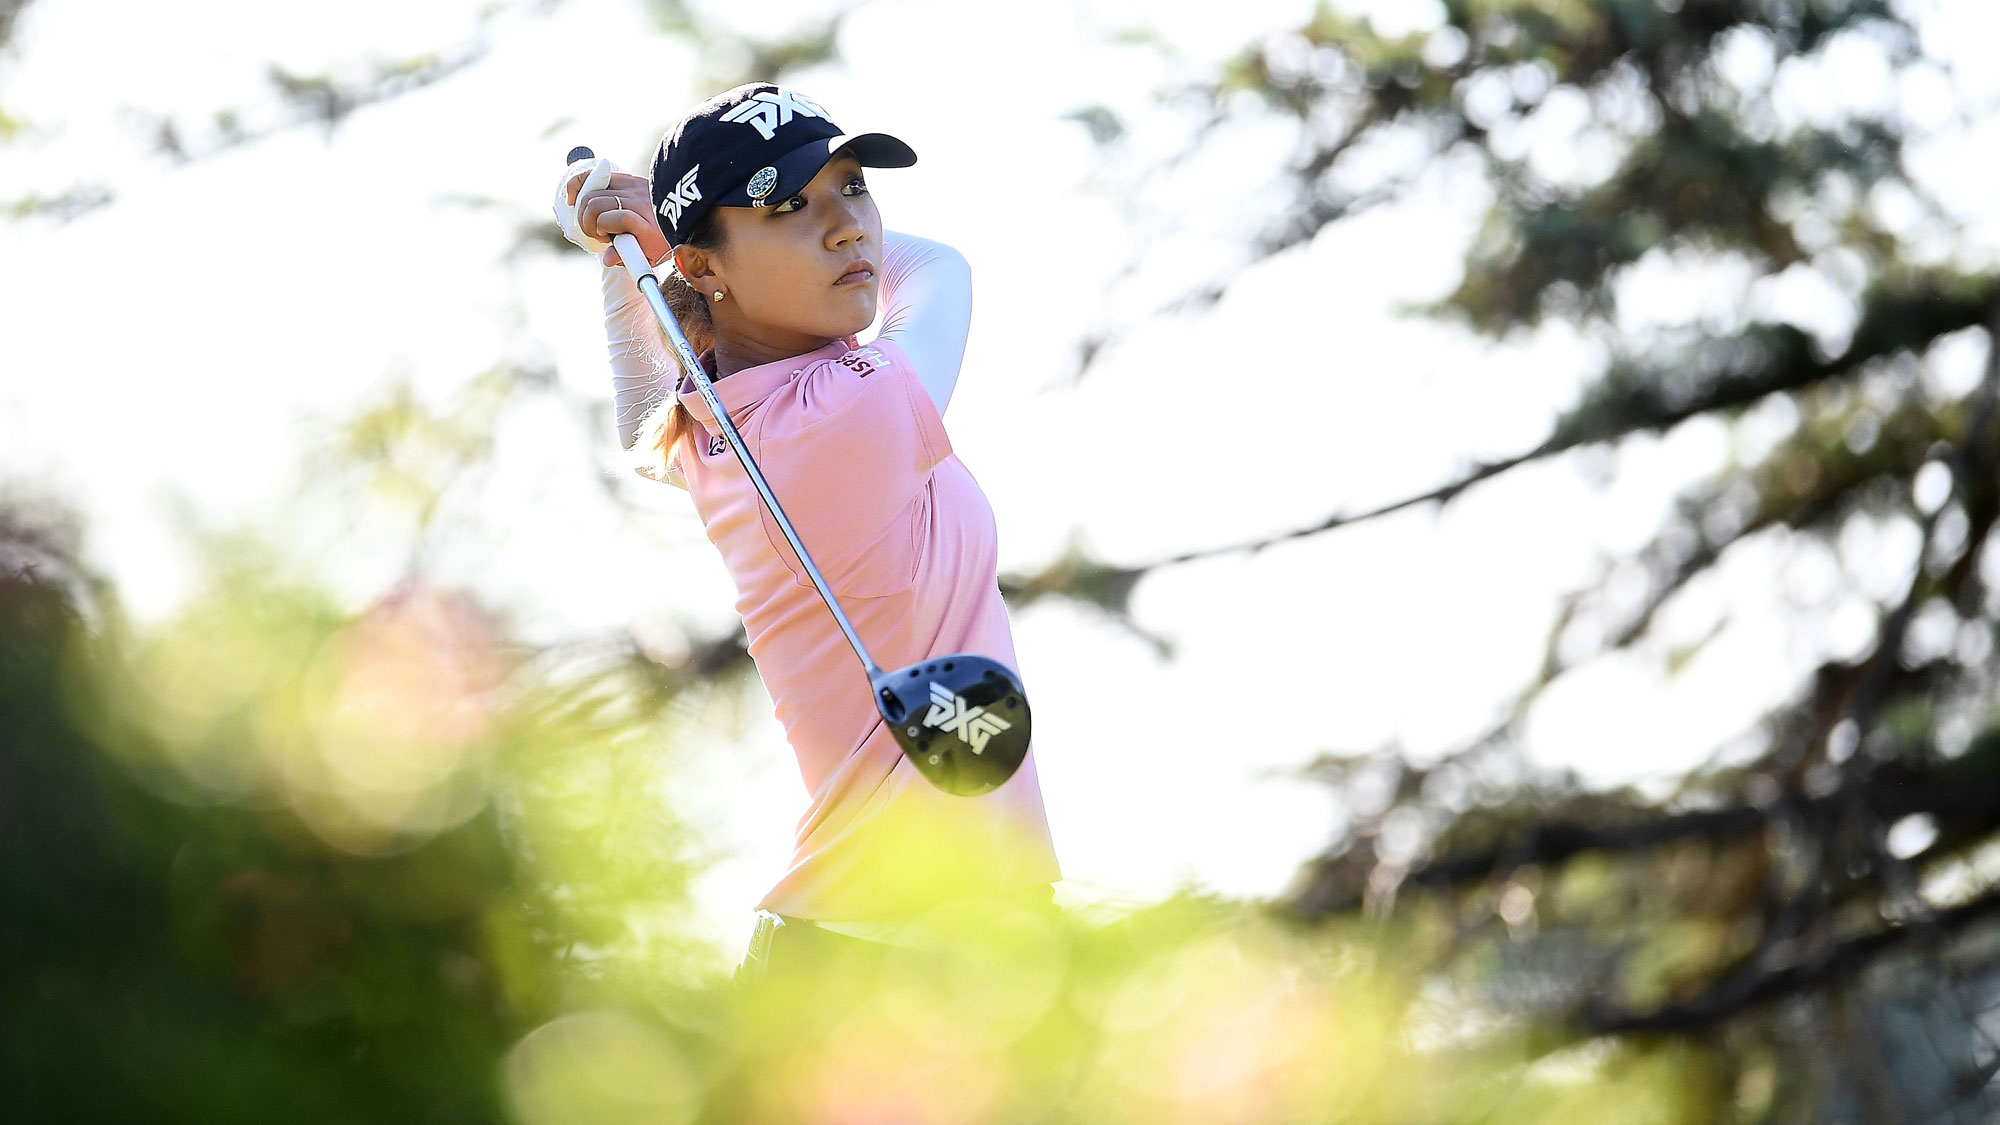 Lydia Ko Swings in Round Two in Grand Rapids, Michigan